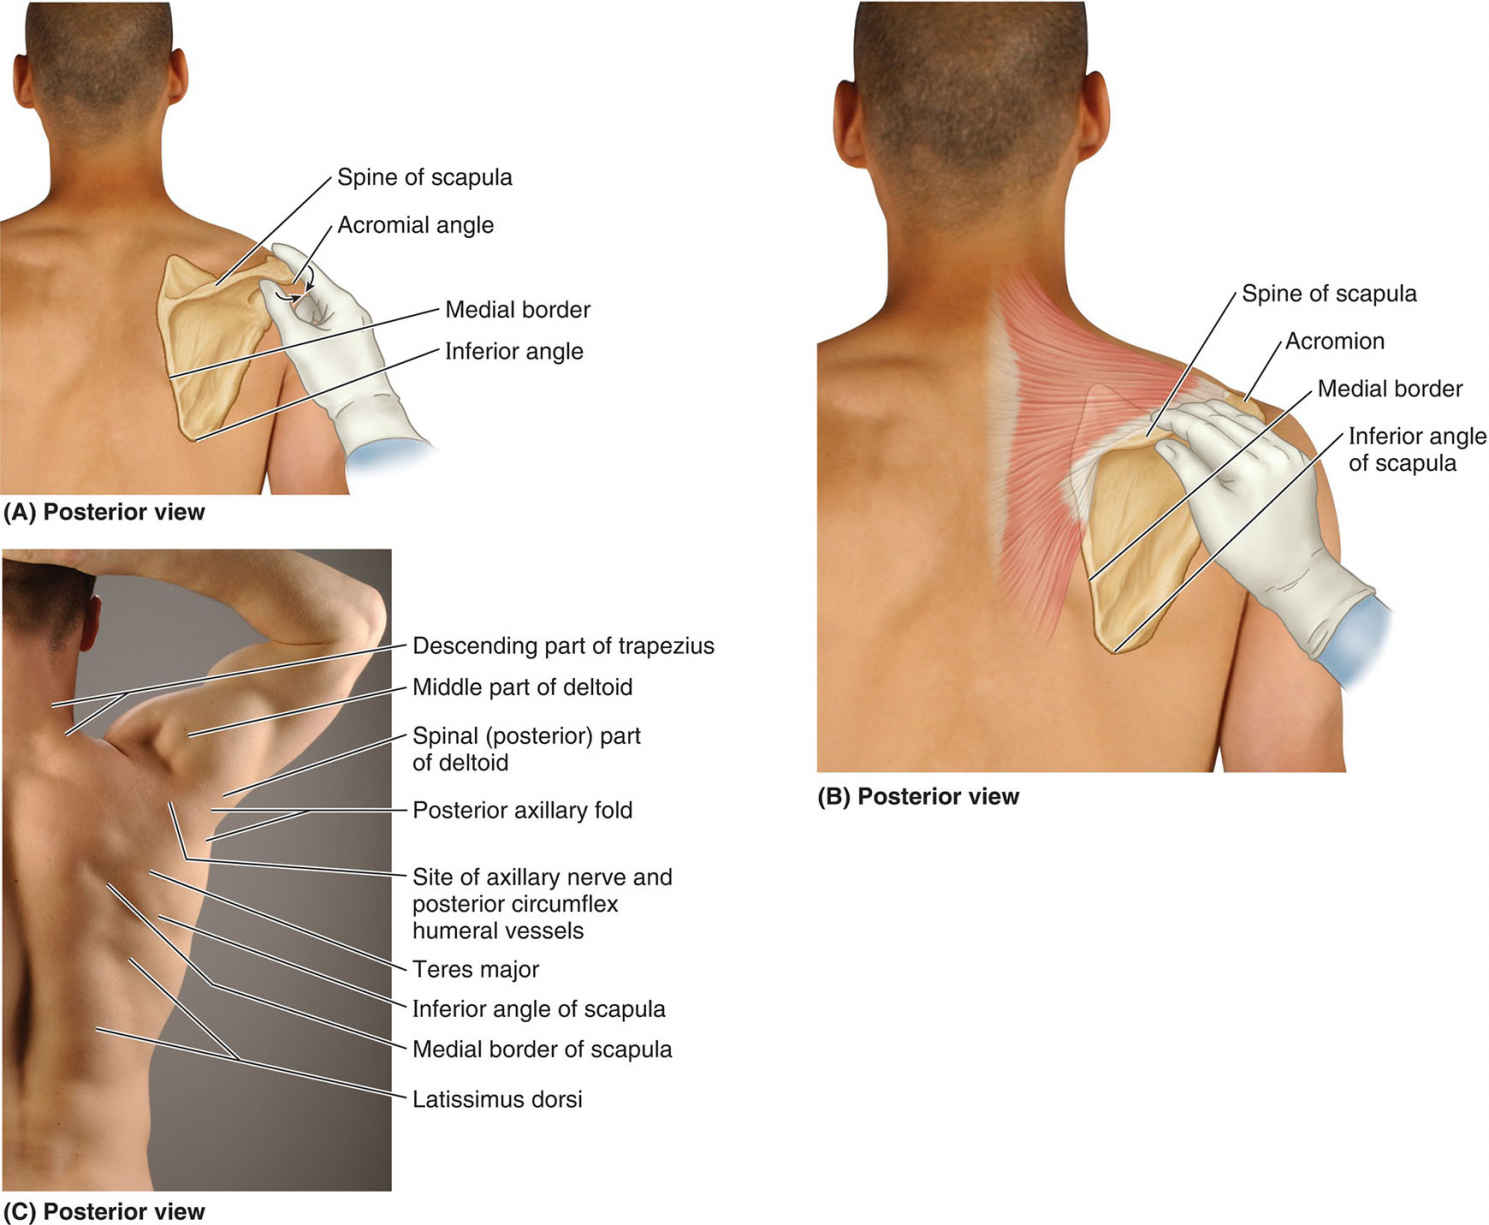 Surface Anatomy Of Scapula And Scapular Region Diagram